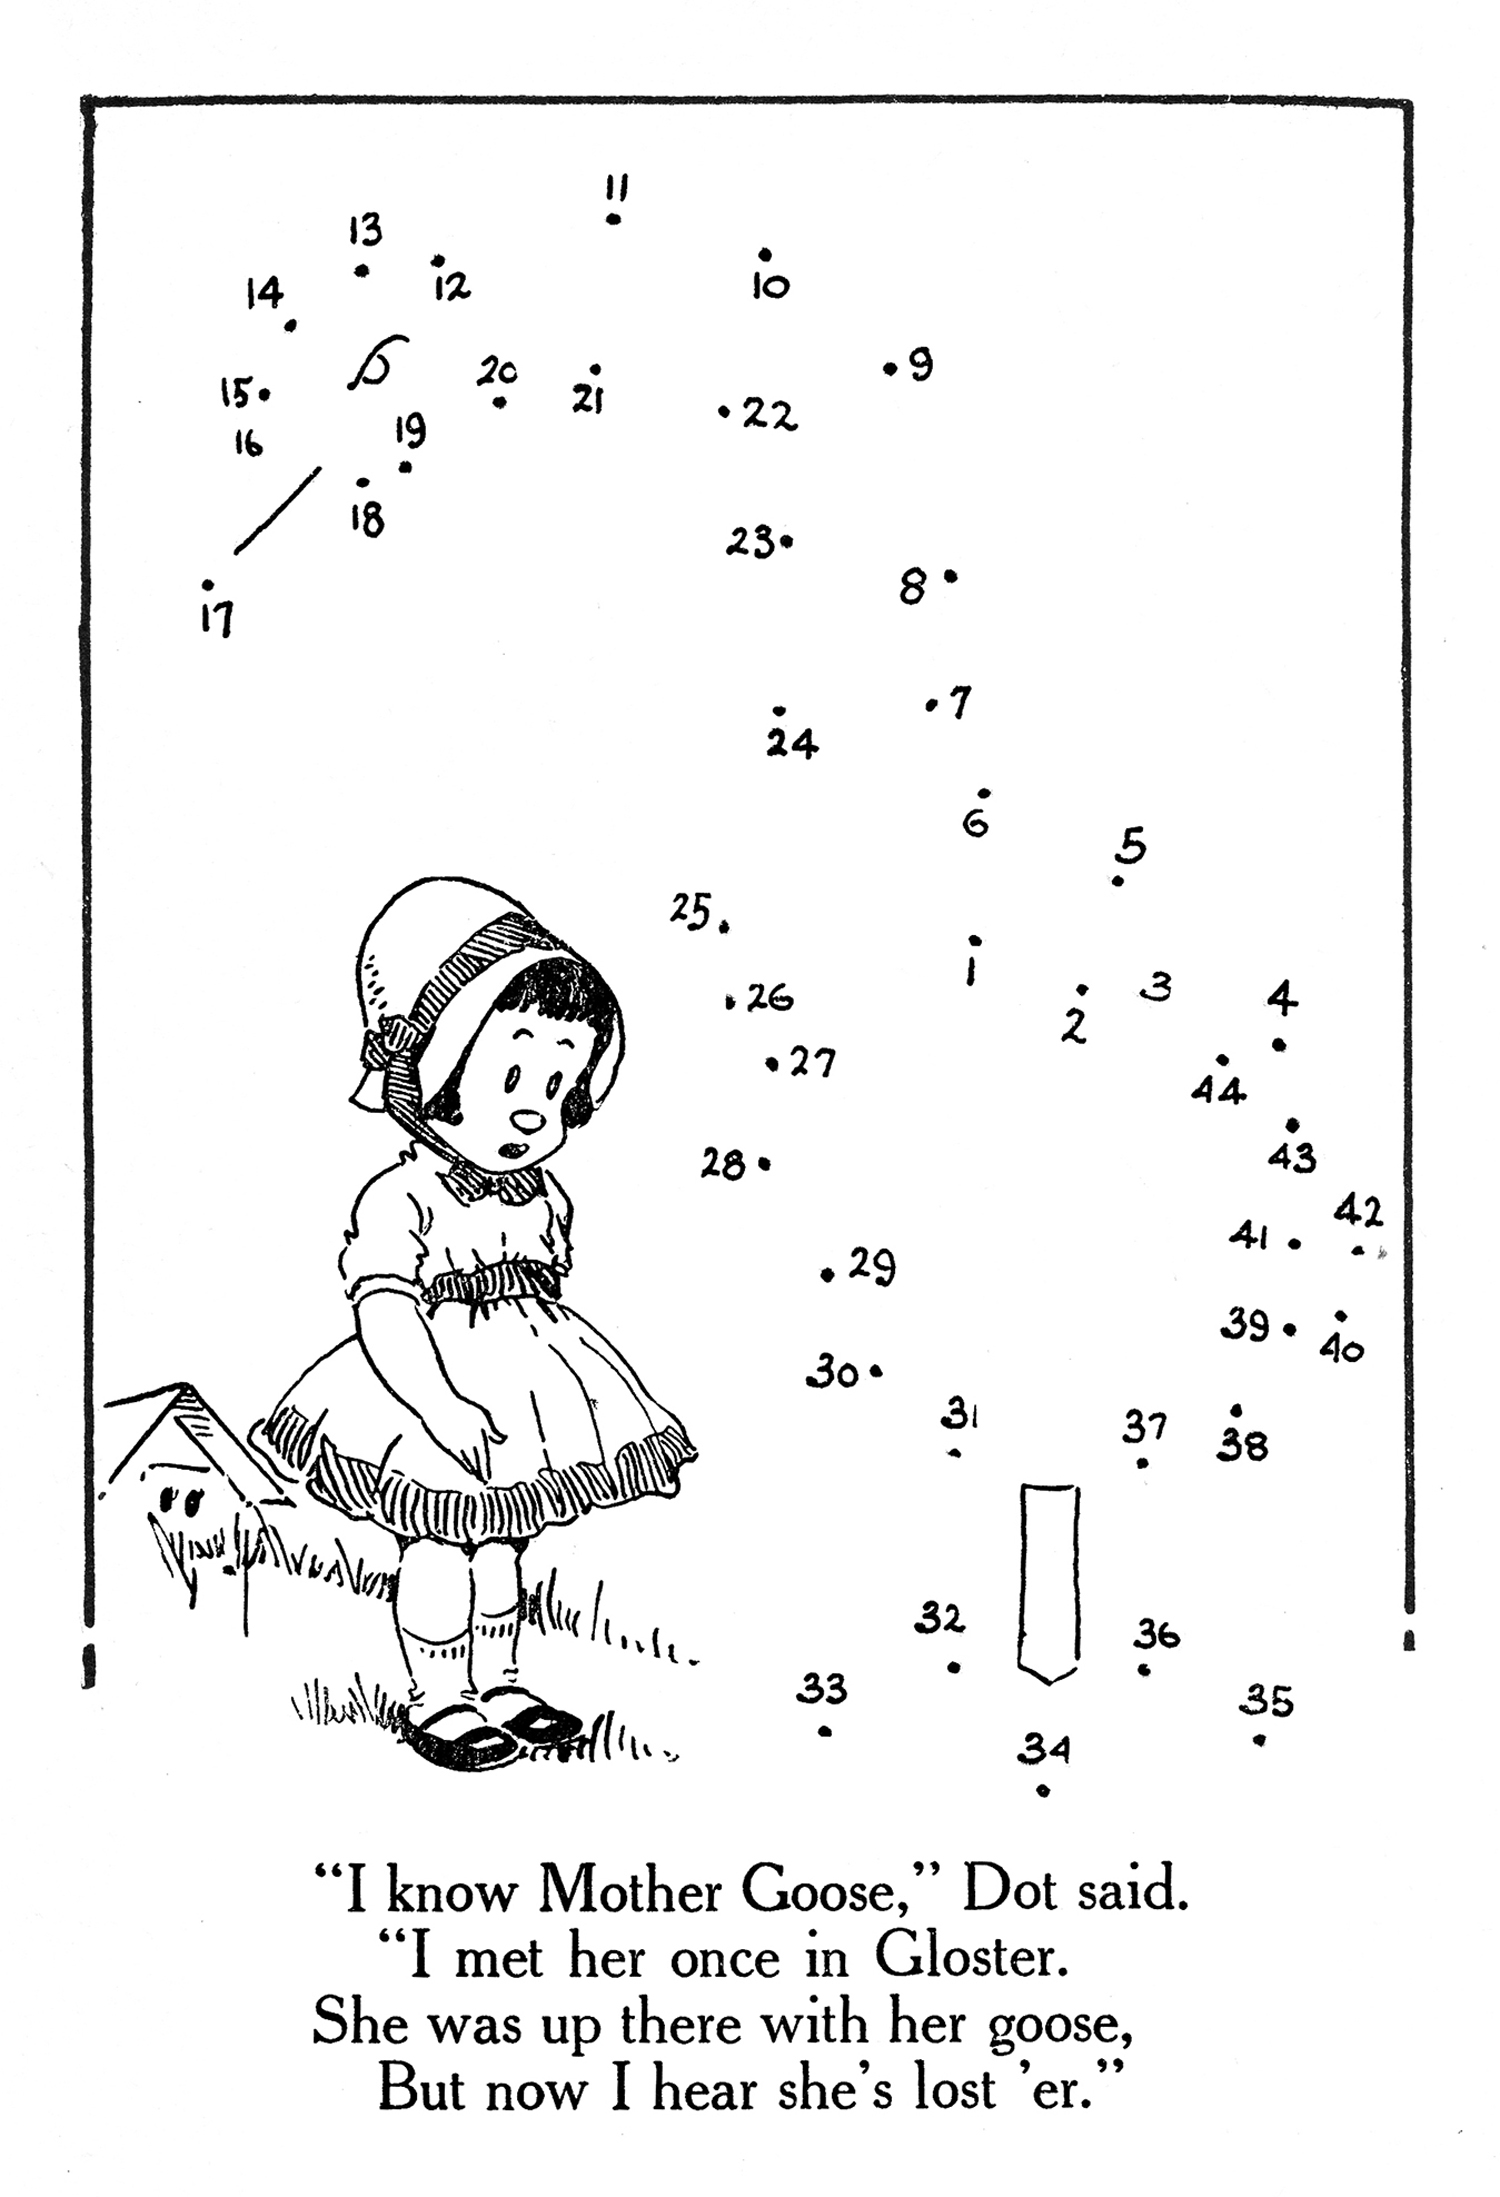 connect the dots worksheets 7 best images of connect the dots worksheets first grade the worksheets connect dots